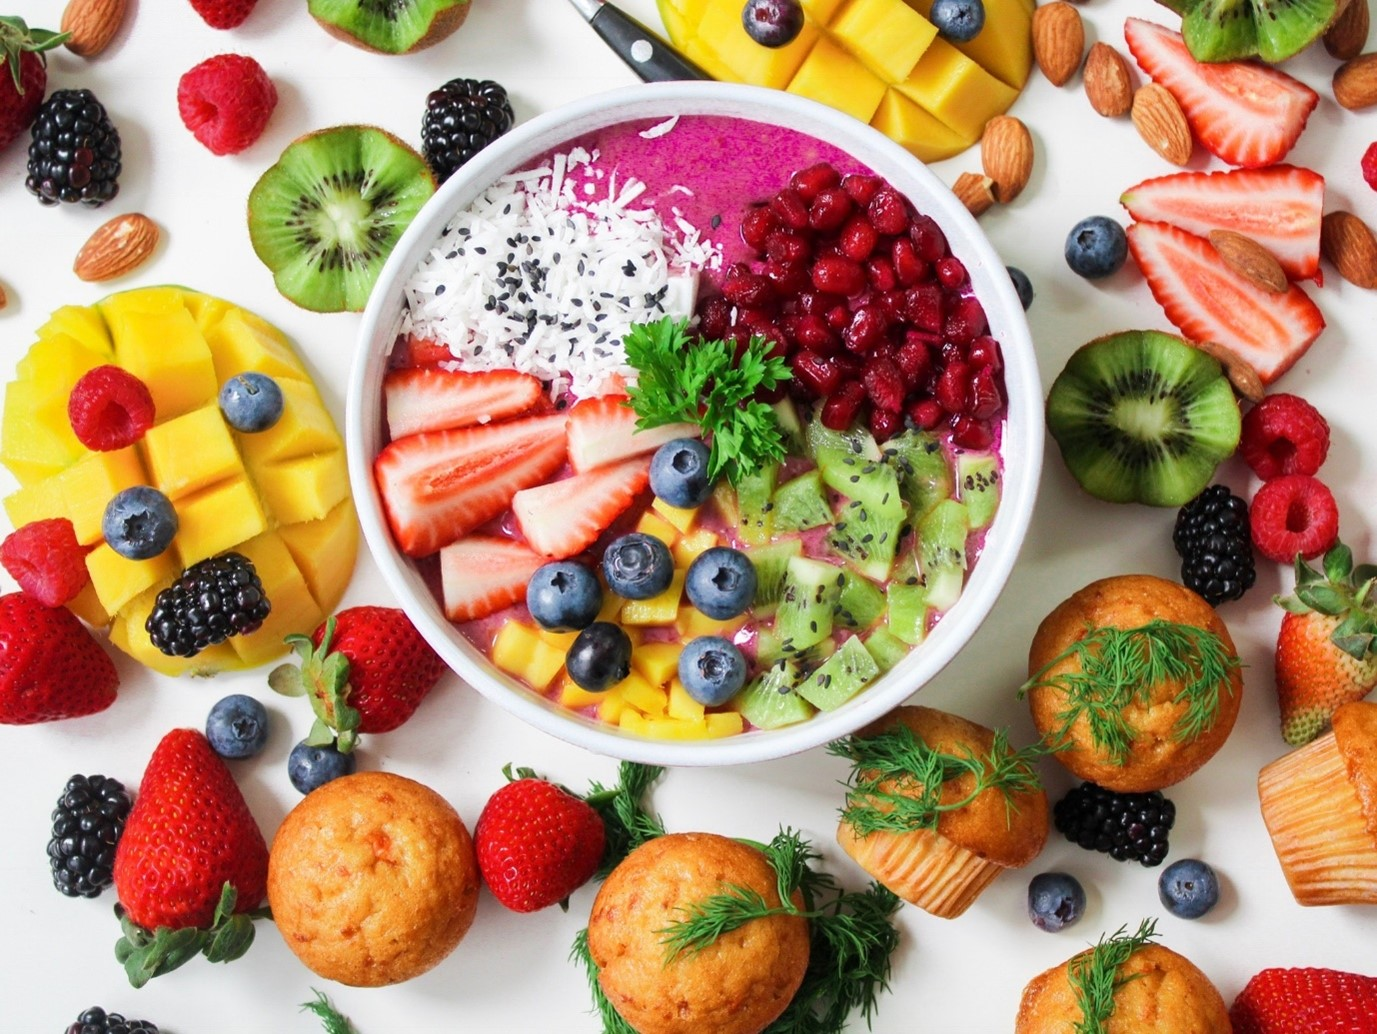 Eat healthy and nutritious foods